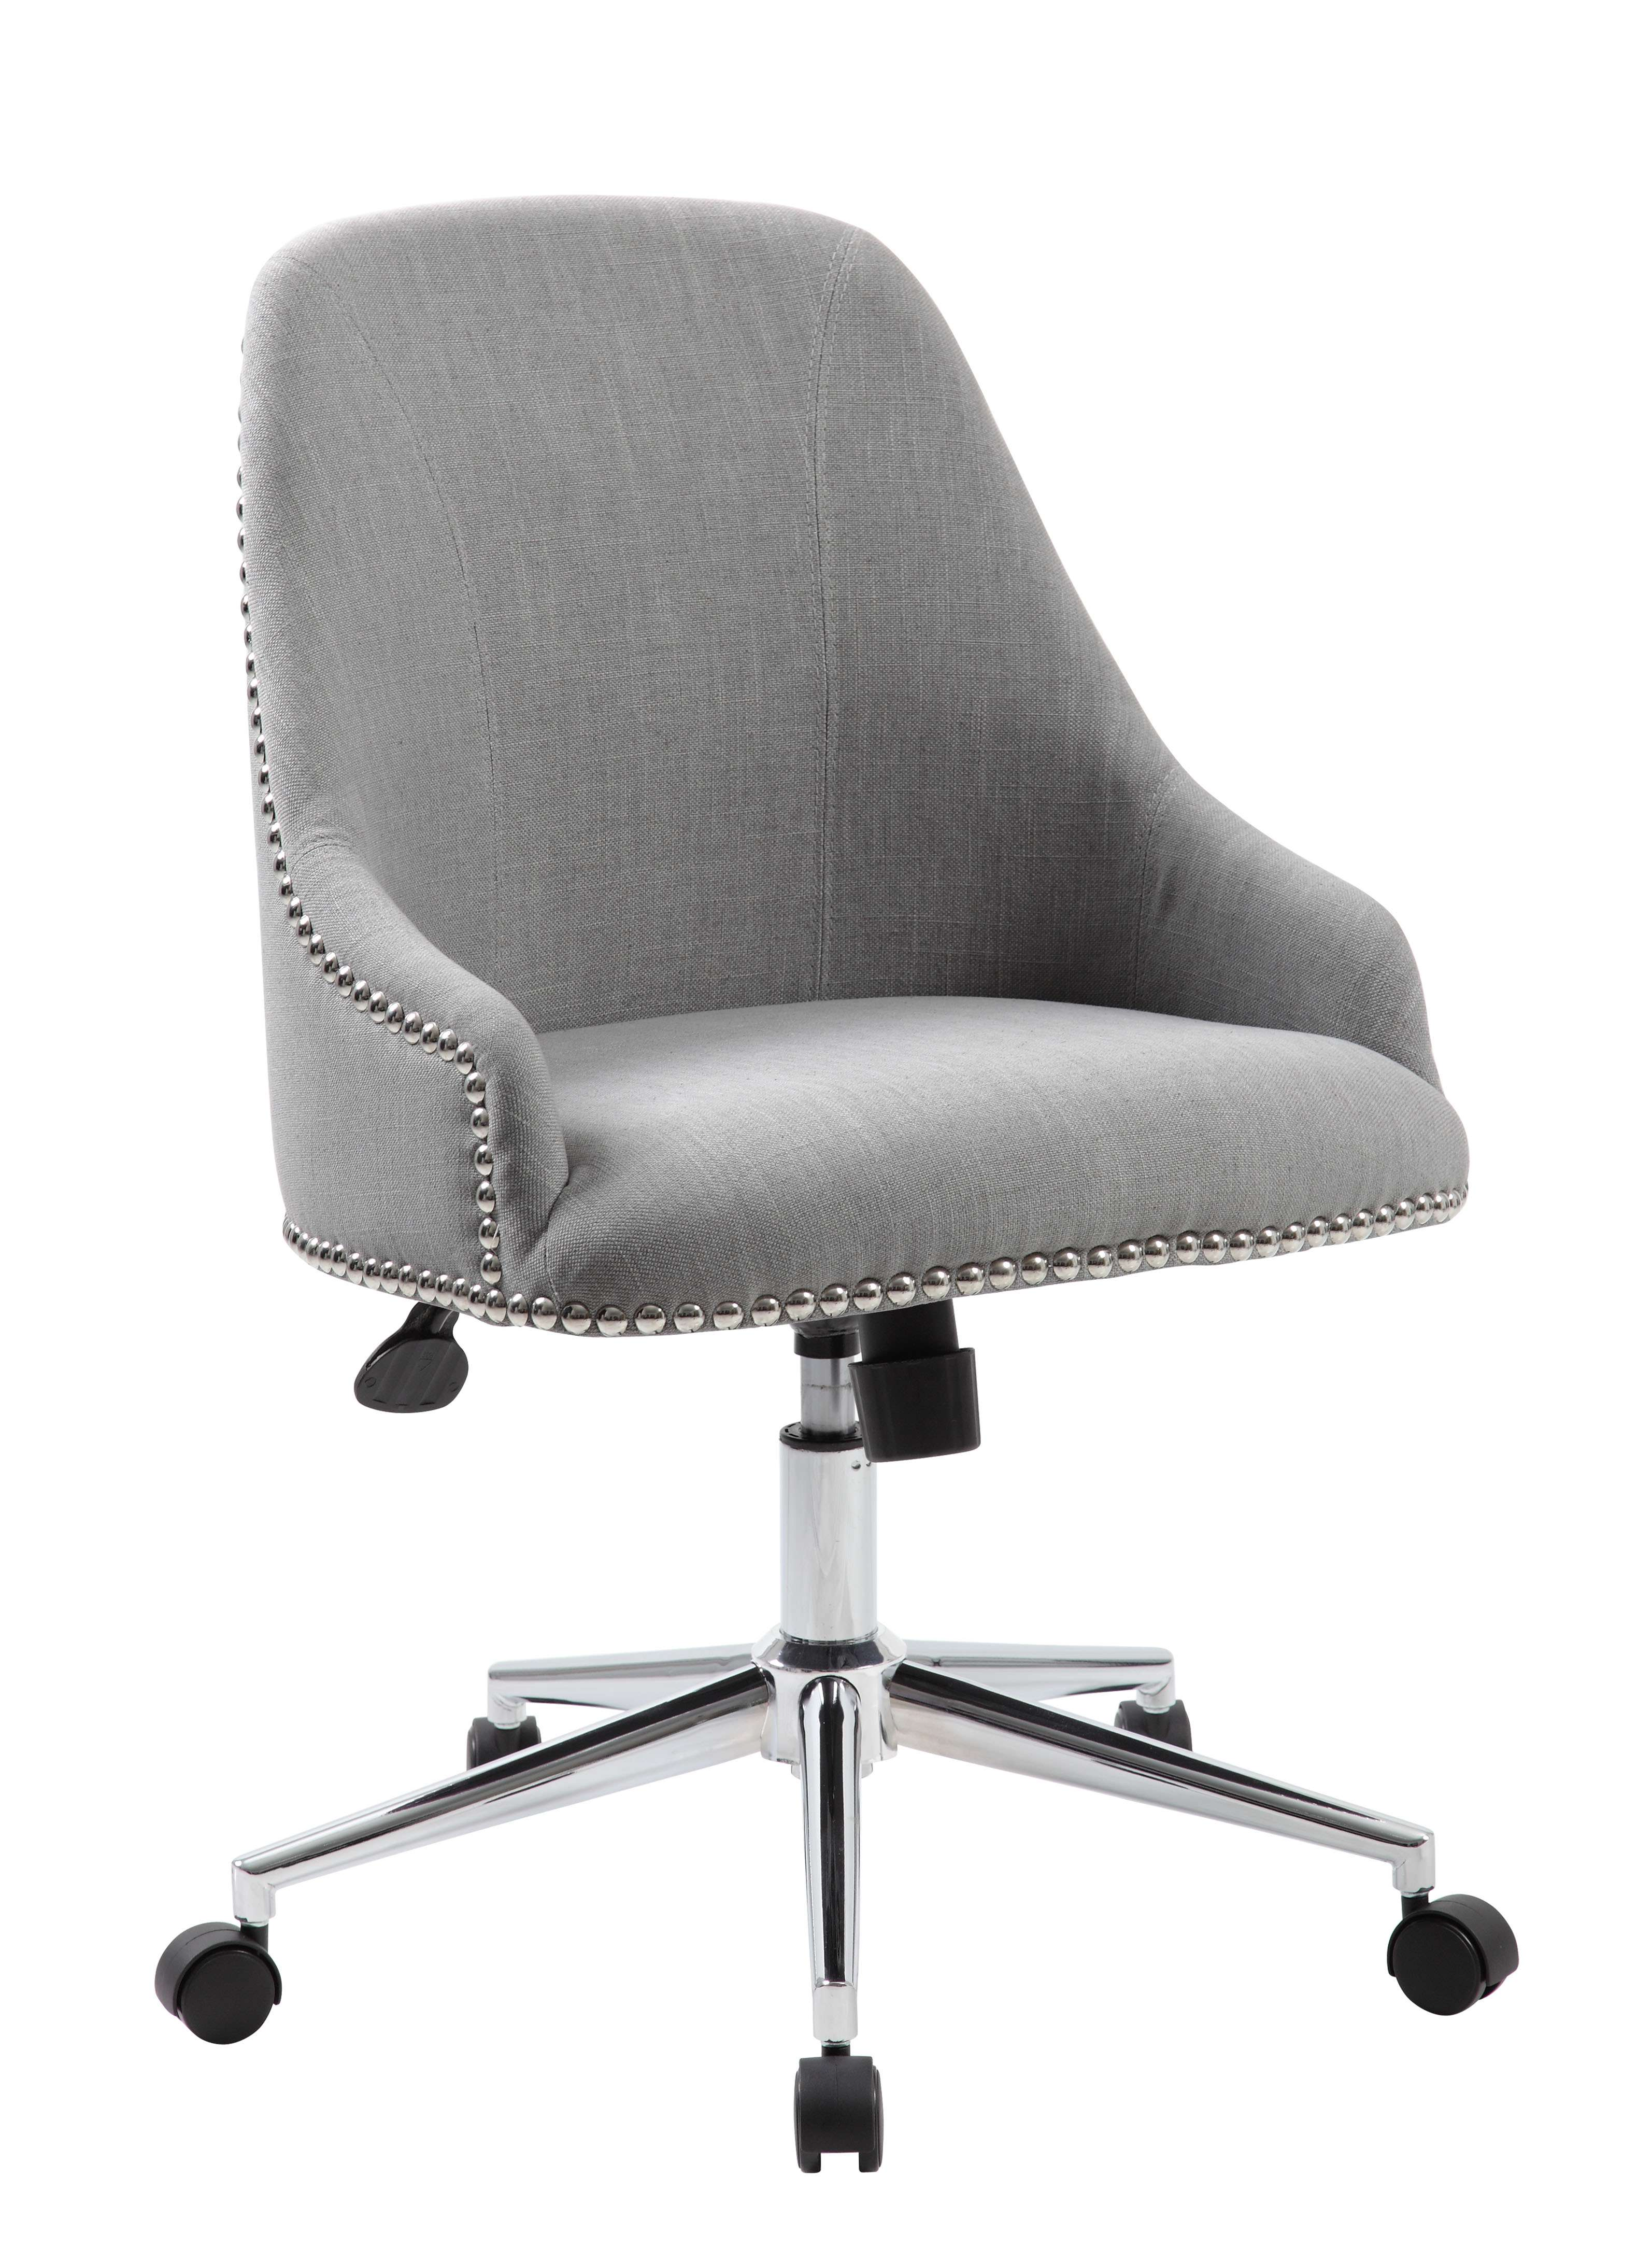 Boss Office Products B516C GY. Carnegie Gray Desk Chair In Chrome Finish